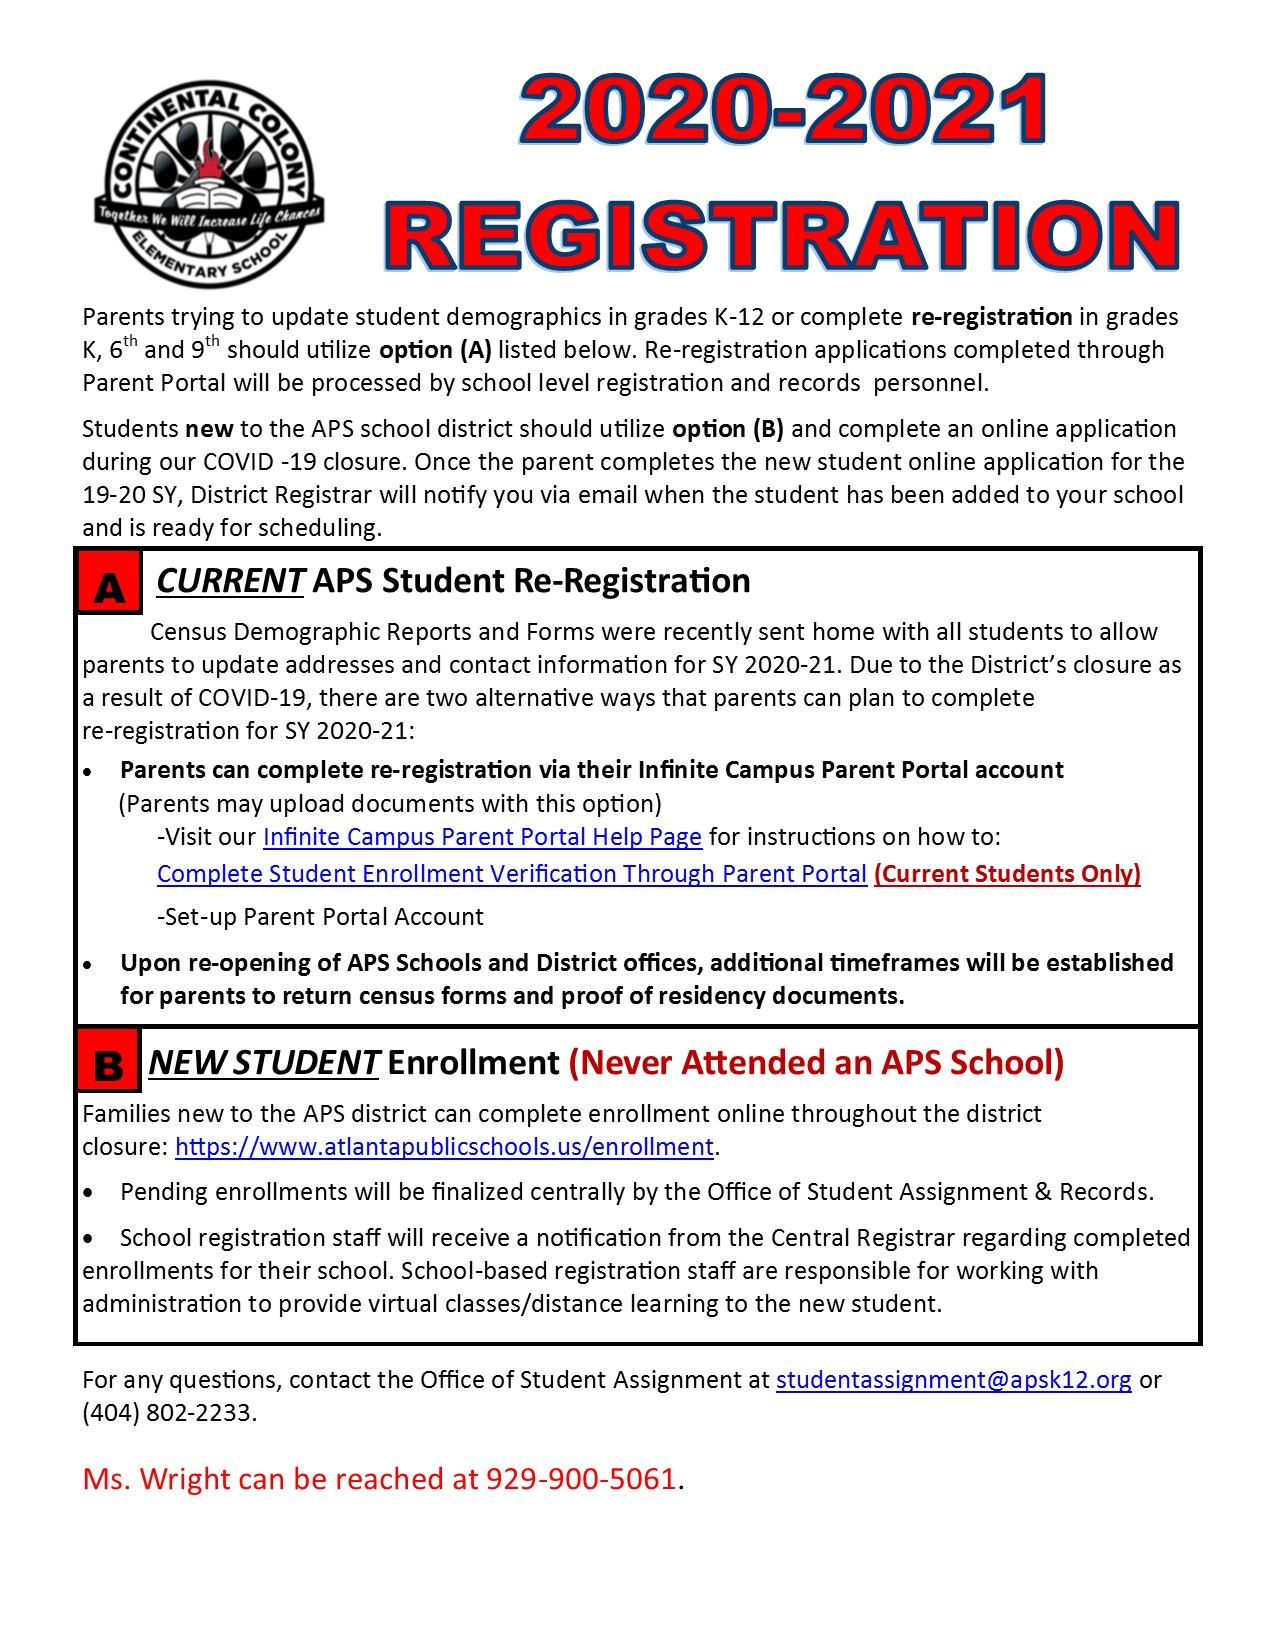 Re-registration instructions for parents to enroll their students